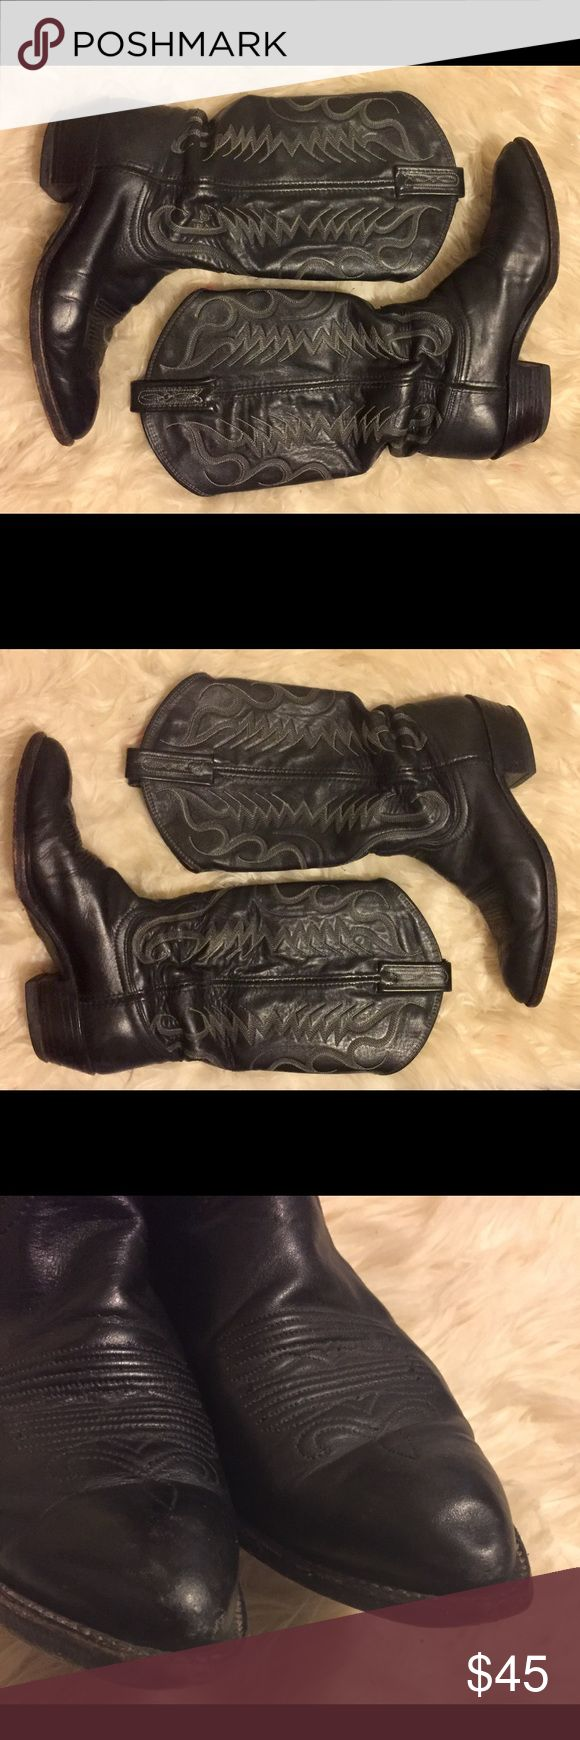 Dan Post Black Leather Western Cowboy Boot Brand: Dan Post Size: Women's 7 Color: black Style: Cowboy Boot Condition: Preowned (scuffing in Toe area and on Heel, see photos) Dan Post Shoes Heeled Boots